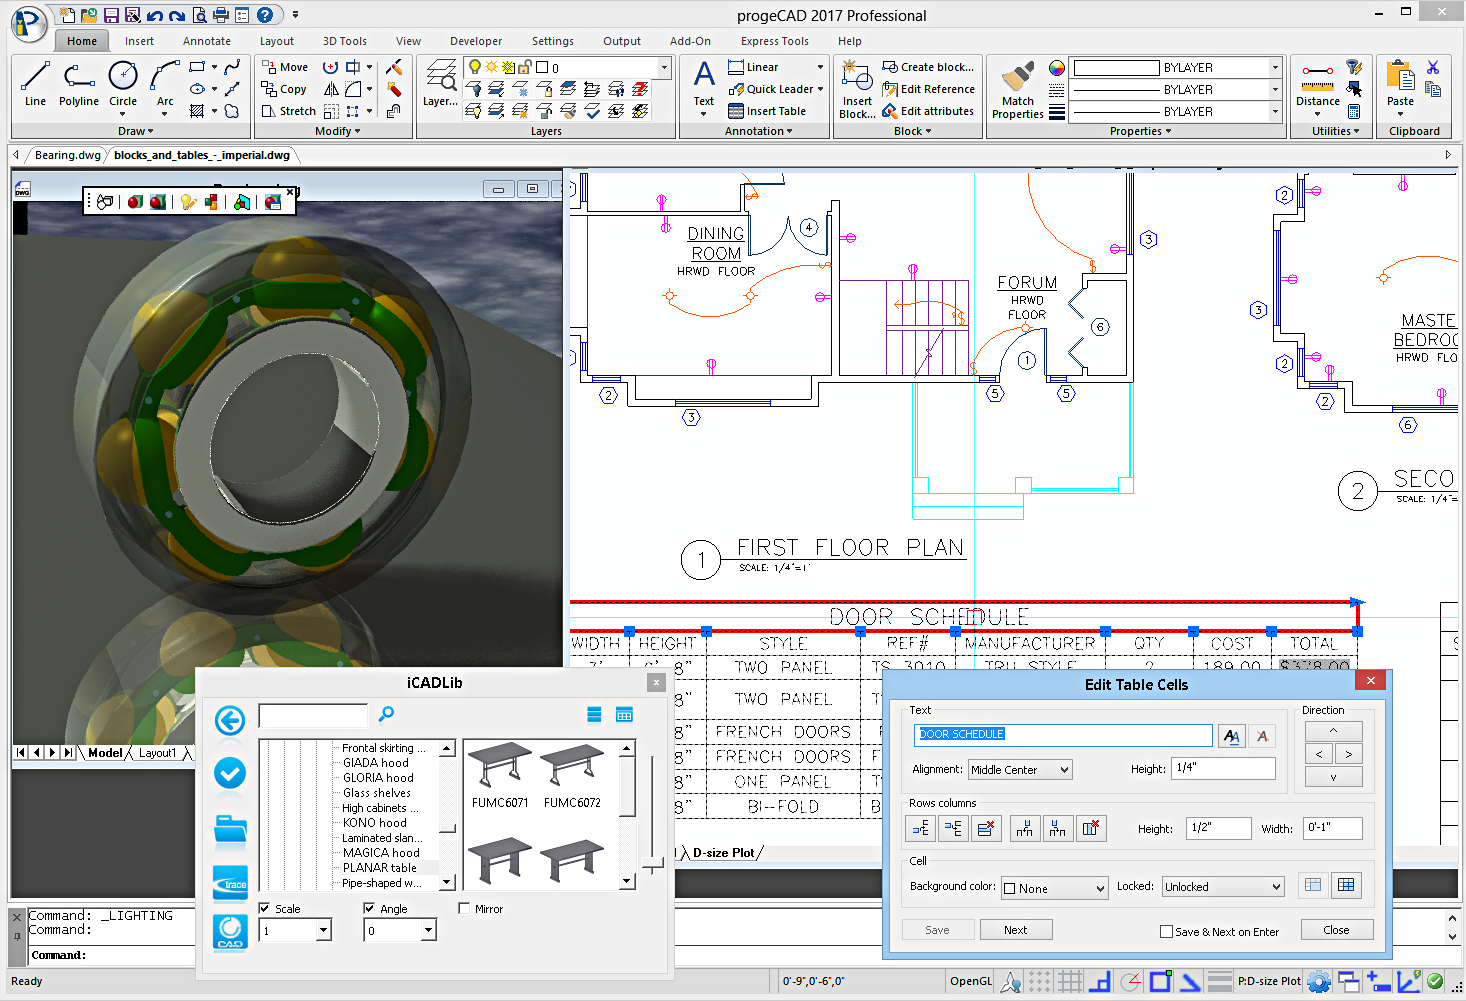 Download Progecad 2017 Professional Cad Software Progecad Perpetual License Offers An